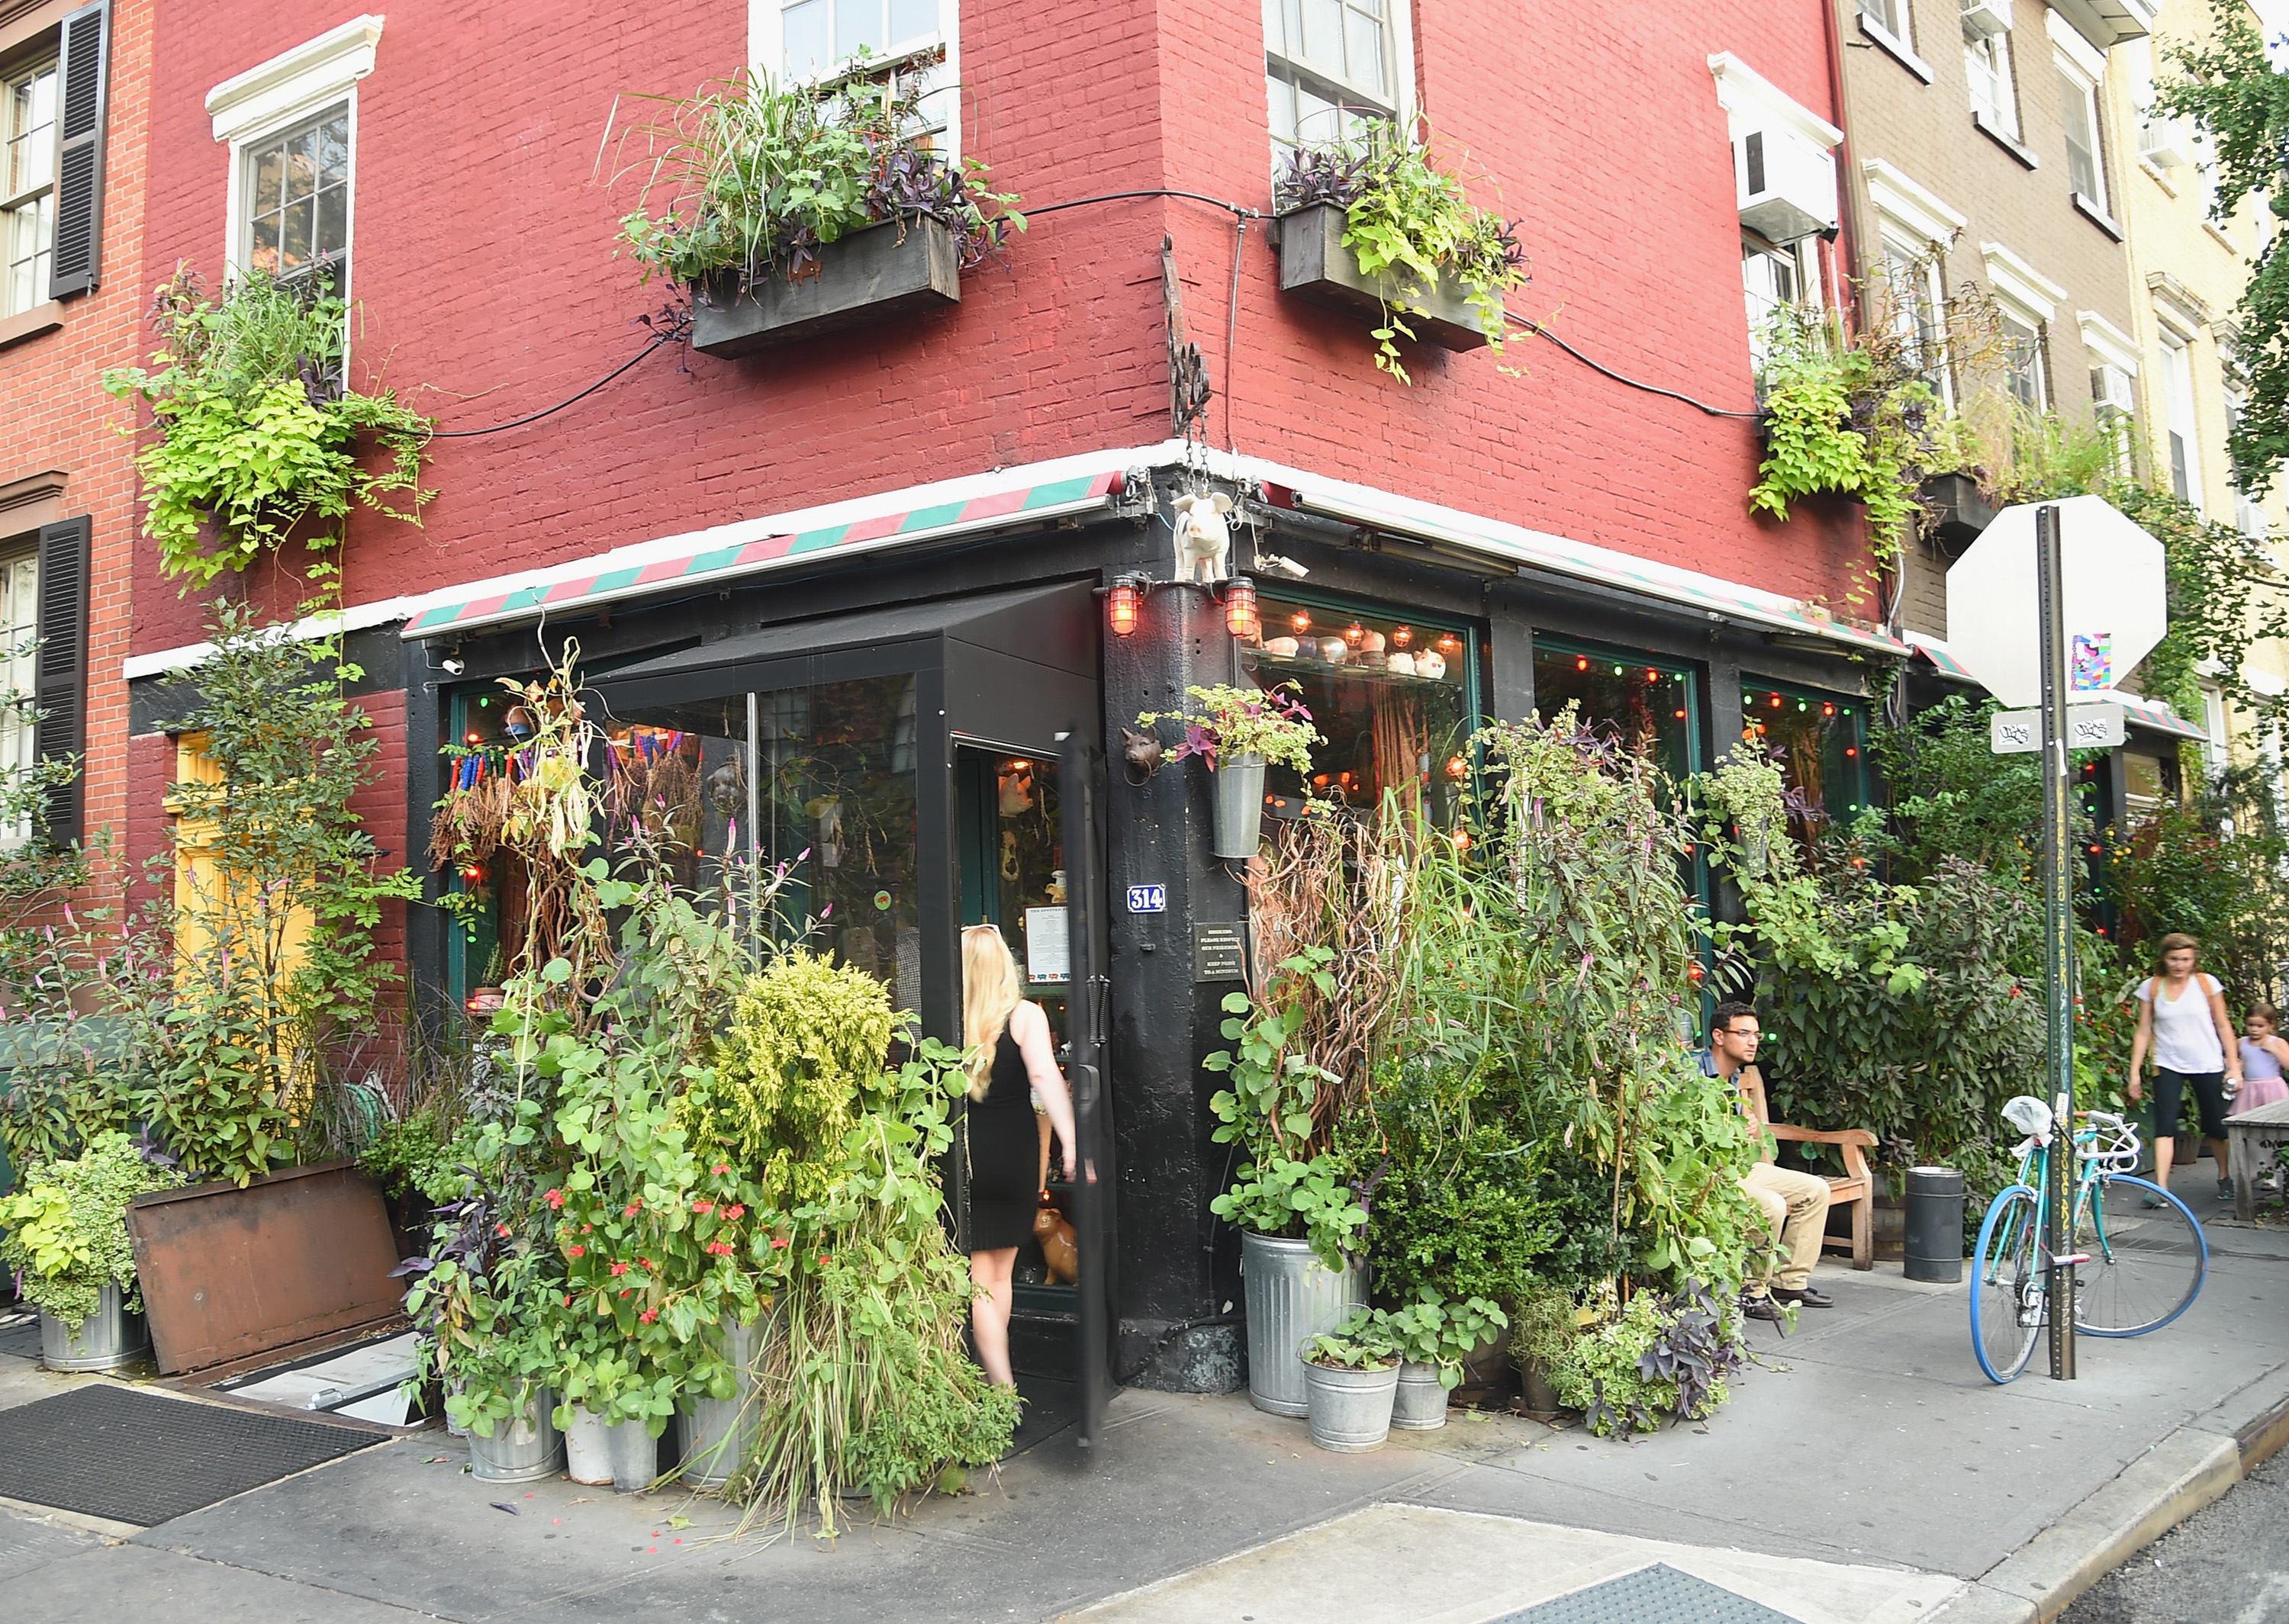 Ken Friedman Says He'll Do Anything to Bring 'Foodies' Back to the Spotted Pig, Even Leave It